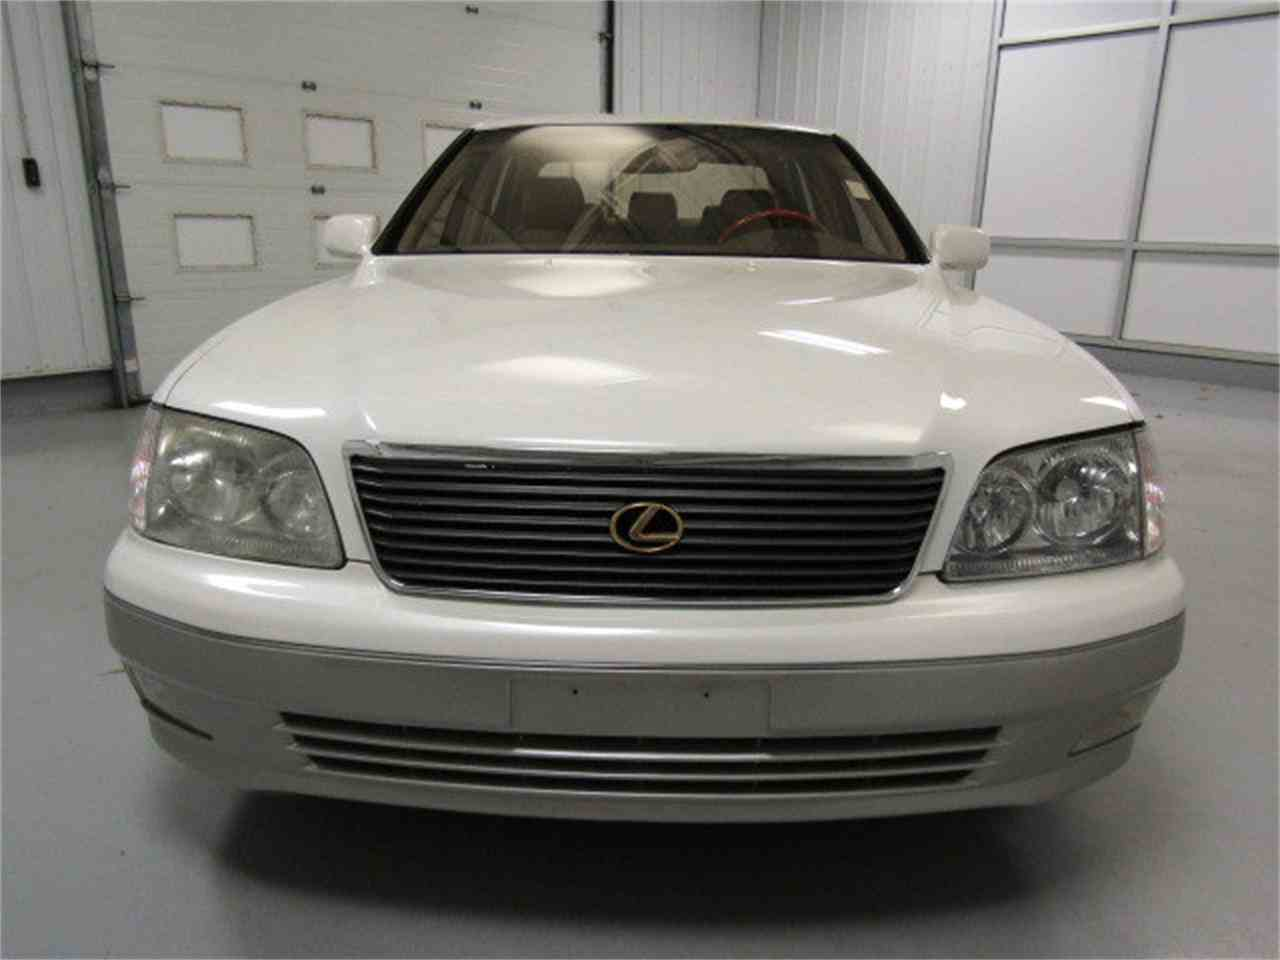 Large Picture of 1999 LS400 Offered by Duncan Imports & Classic Cars - JM33